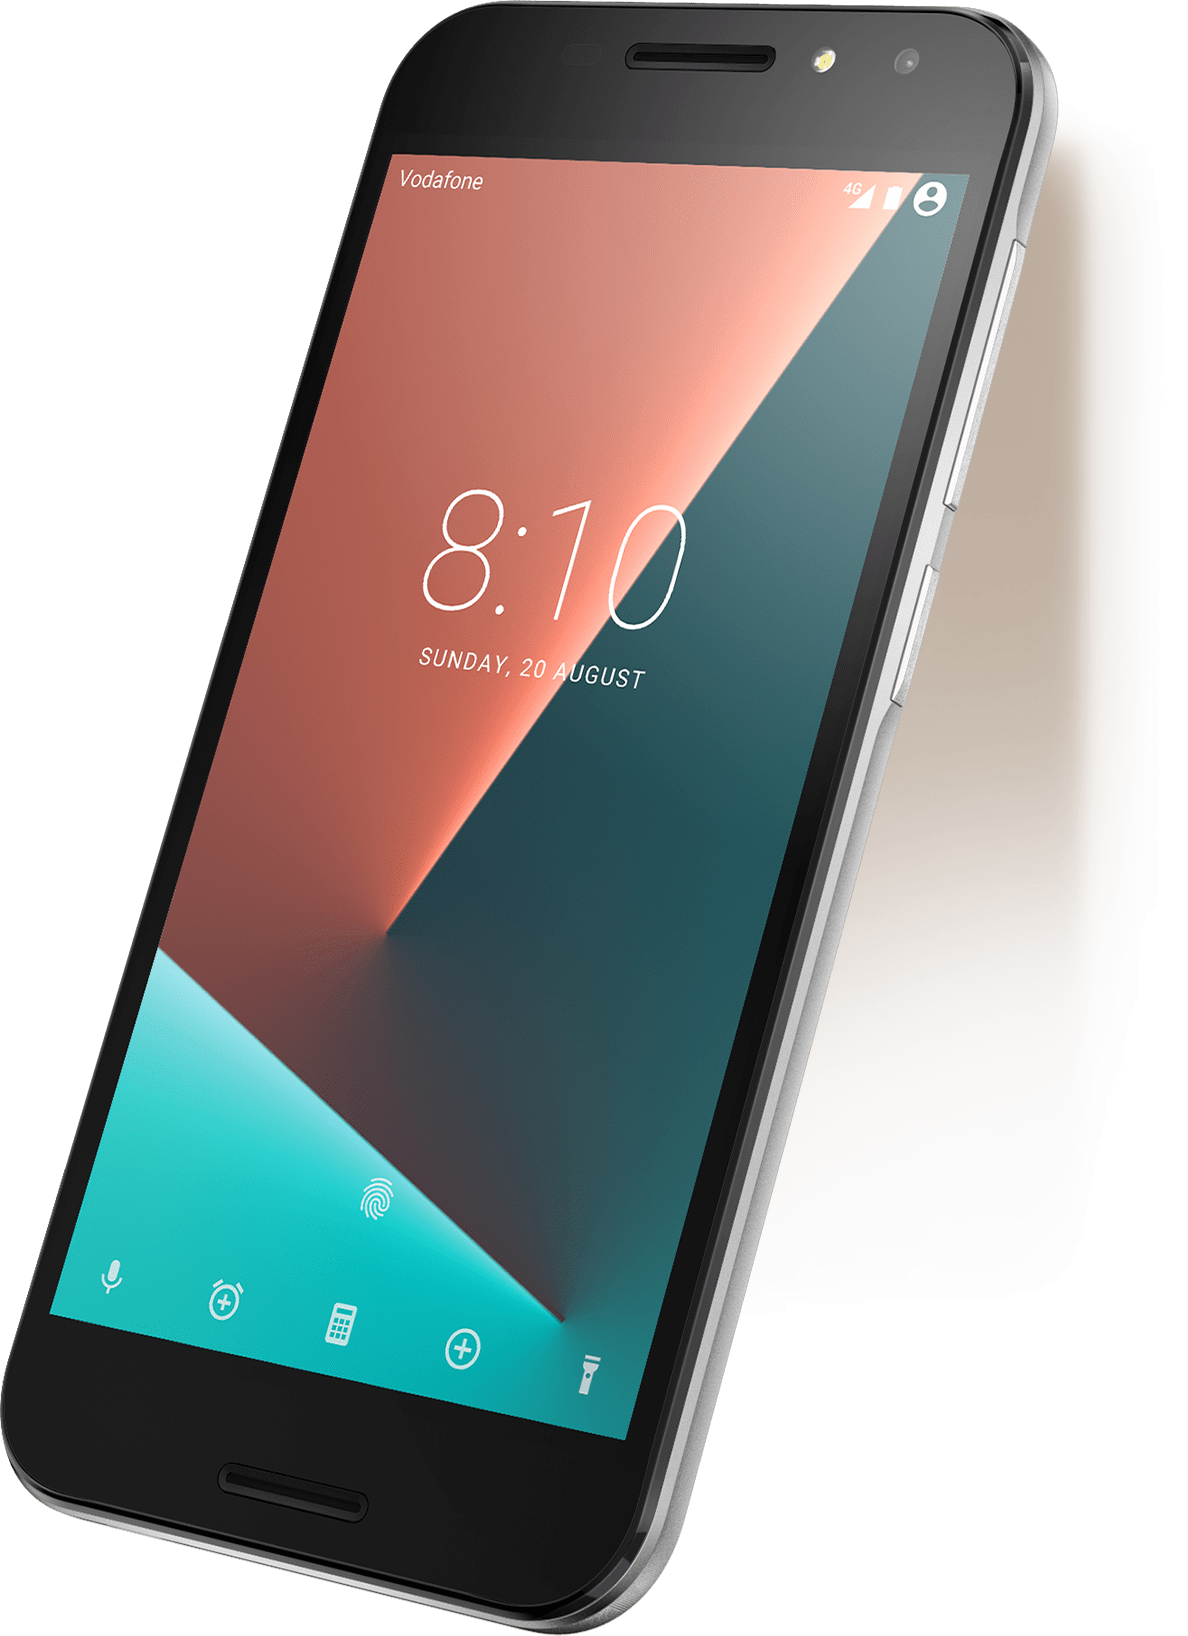 Vodafone Launches Smart 8 Phones In Portugal With Android